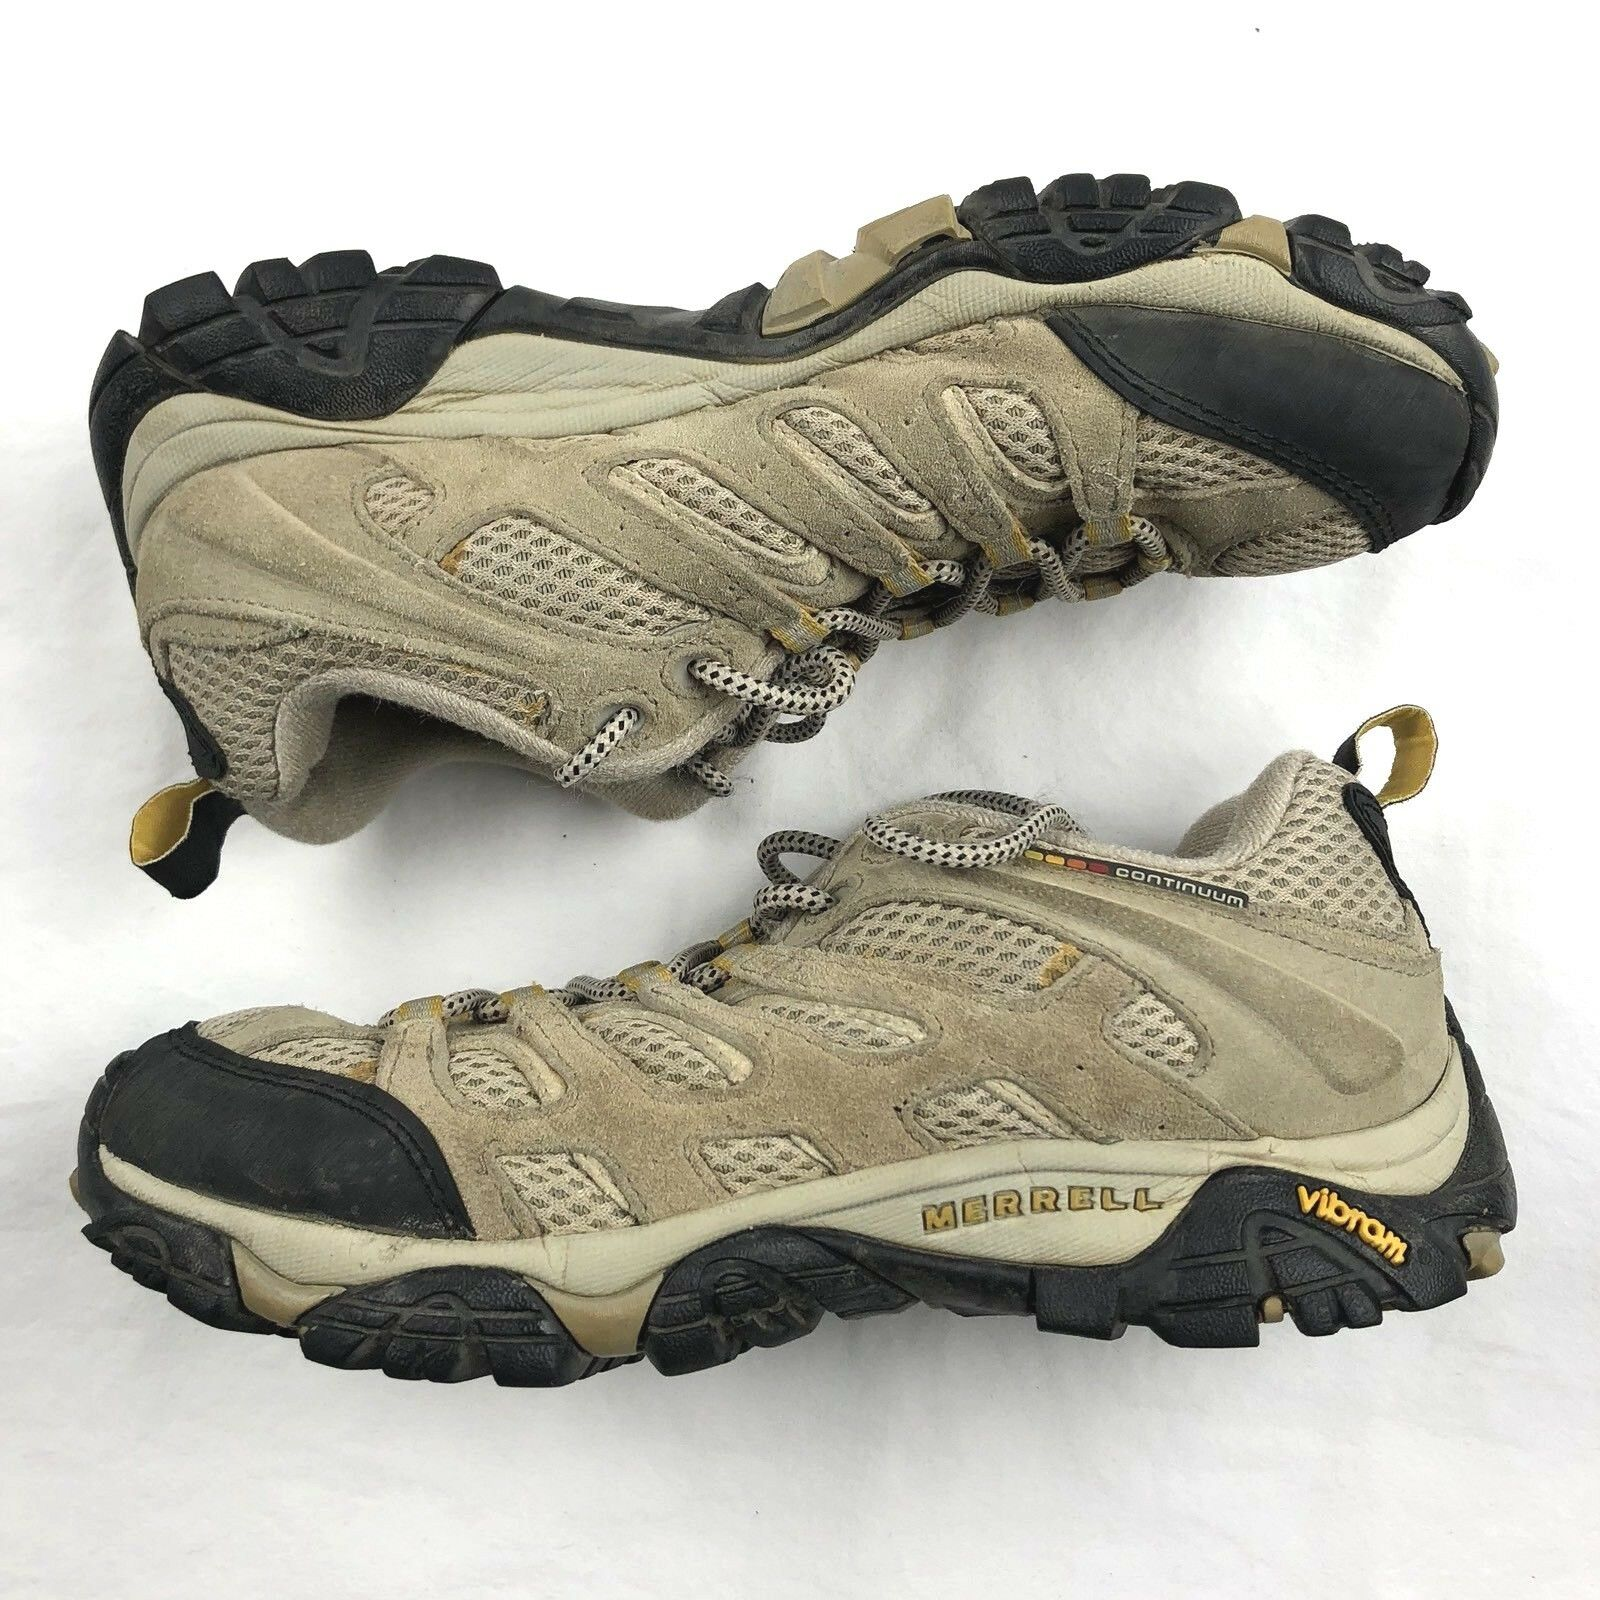 MERRELL Continuum Women's Trail Hiking shoes Taupe VIBRAM J86612 Size 7.5  120